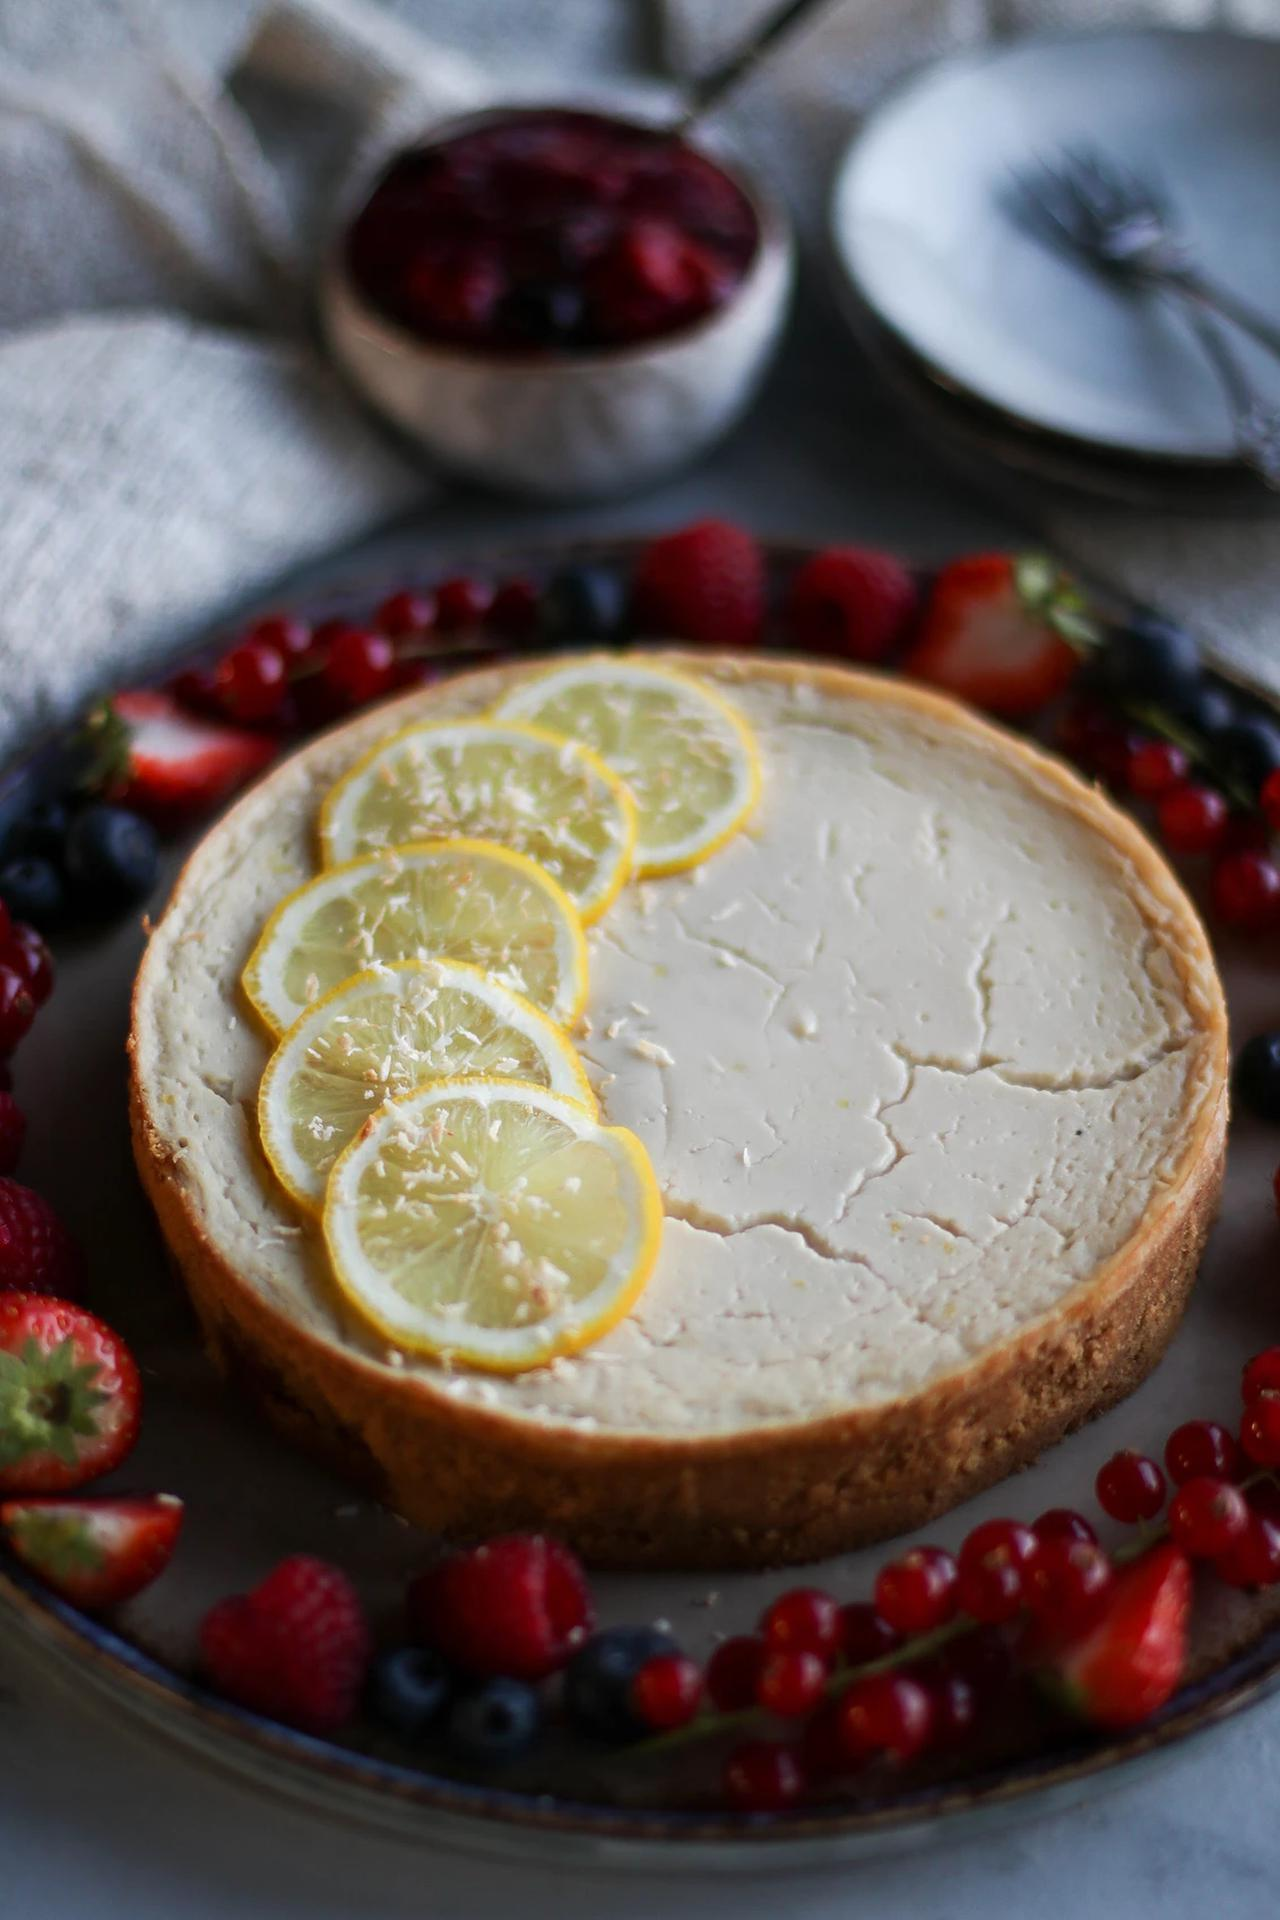 Main image of Coconut Lemon Custard Tart